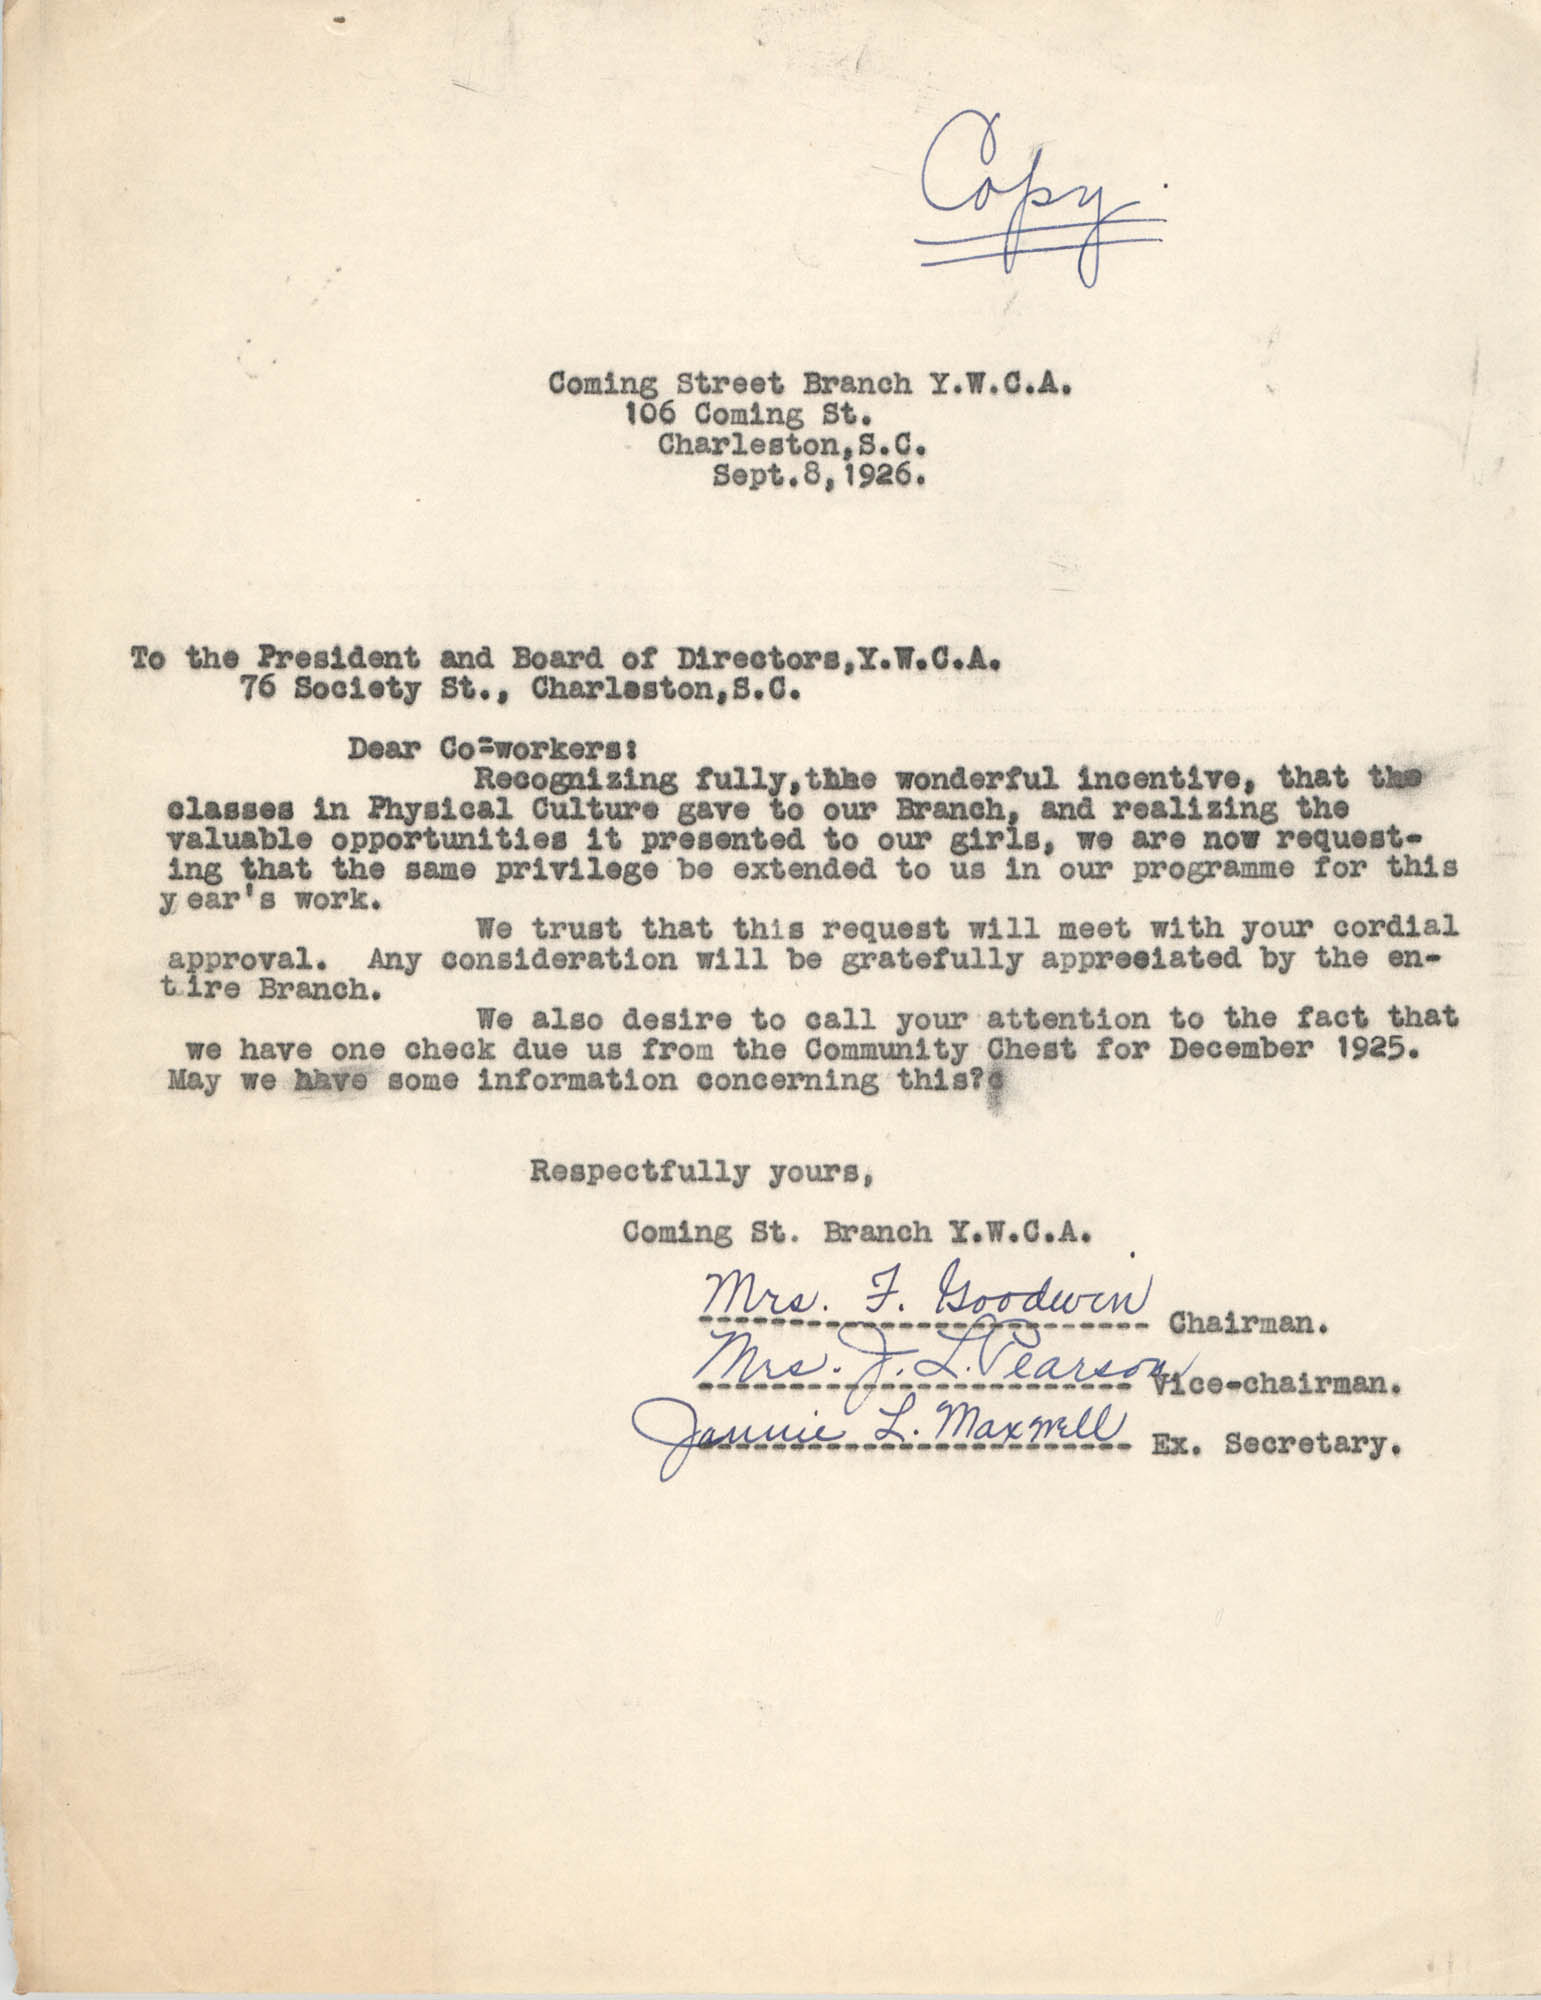 Correspondence from Felicia Goodwin, J. L. Pearson, and Jannie L. Maxwell to President and Board of Y.W.C.A., September 8, 1926